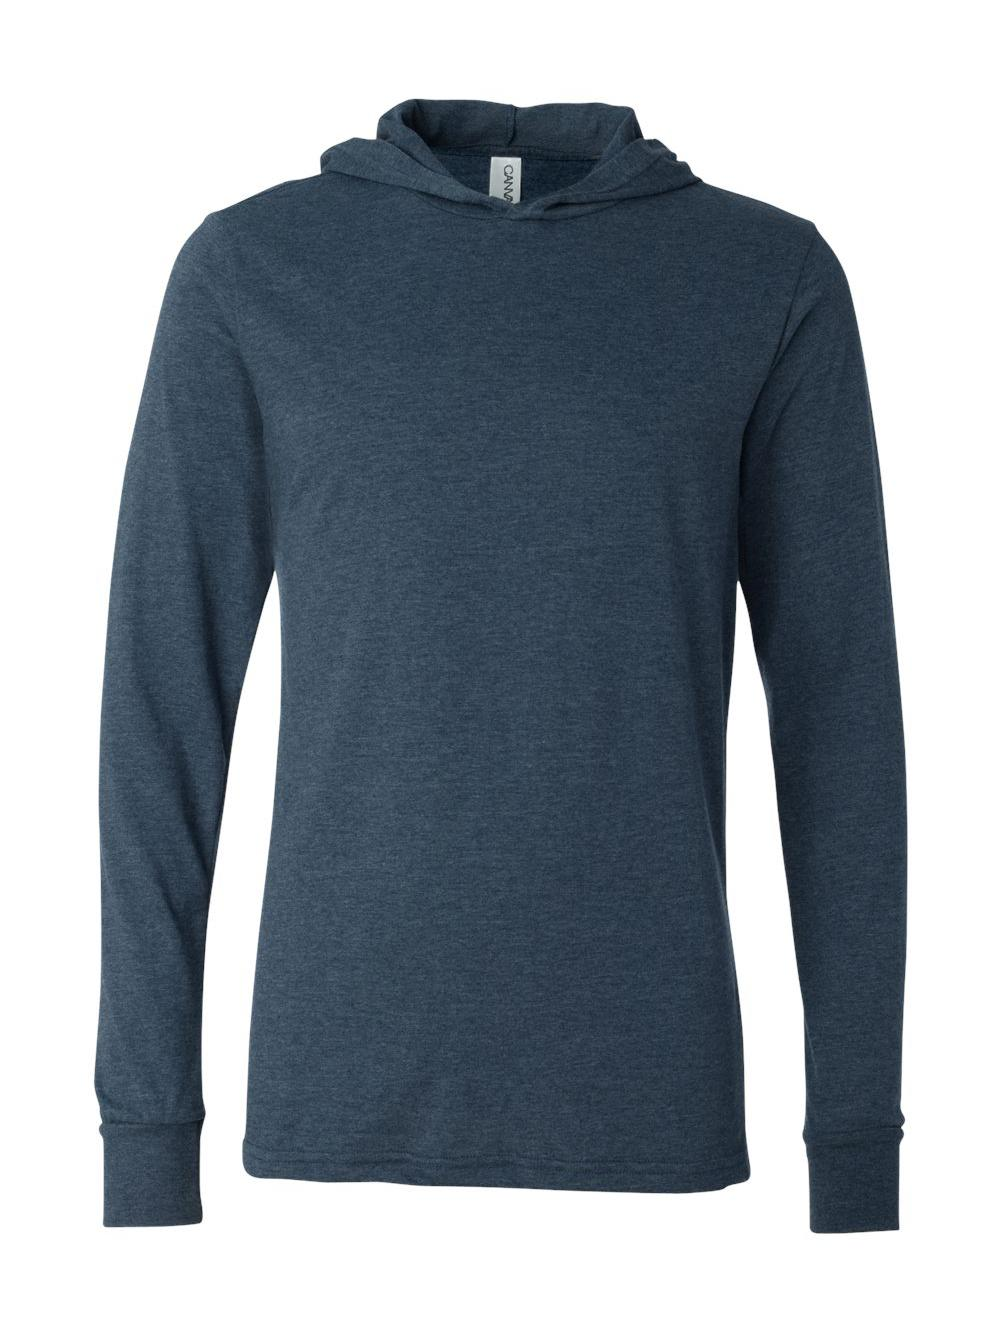 Bella-Canvas-Unisex-Long-Sleeve-Jersey-Hooded-Tee-3512 thumbnail 21